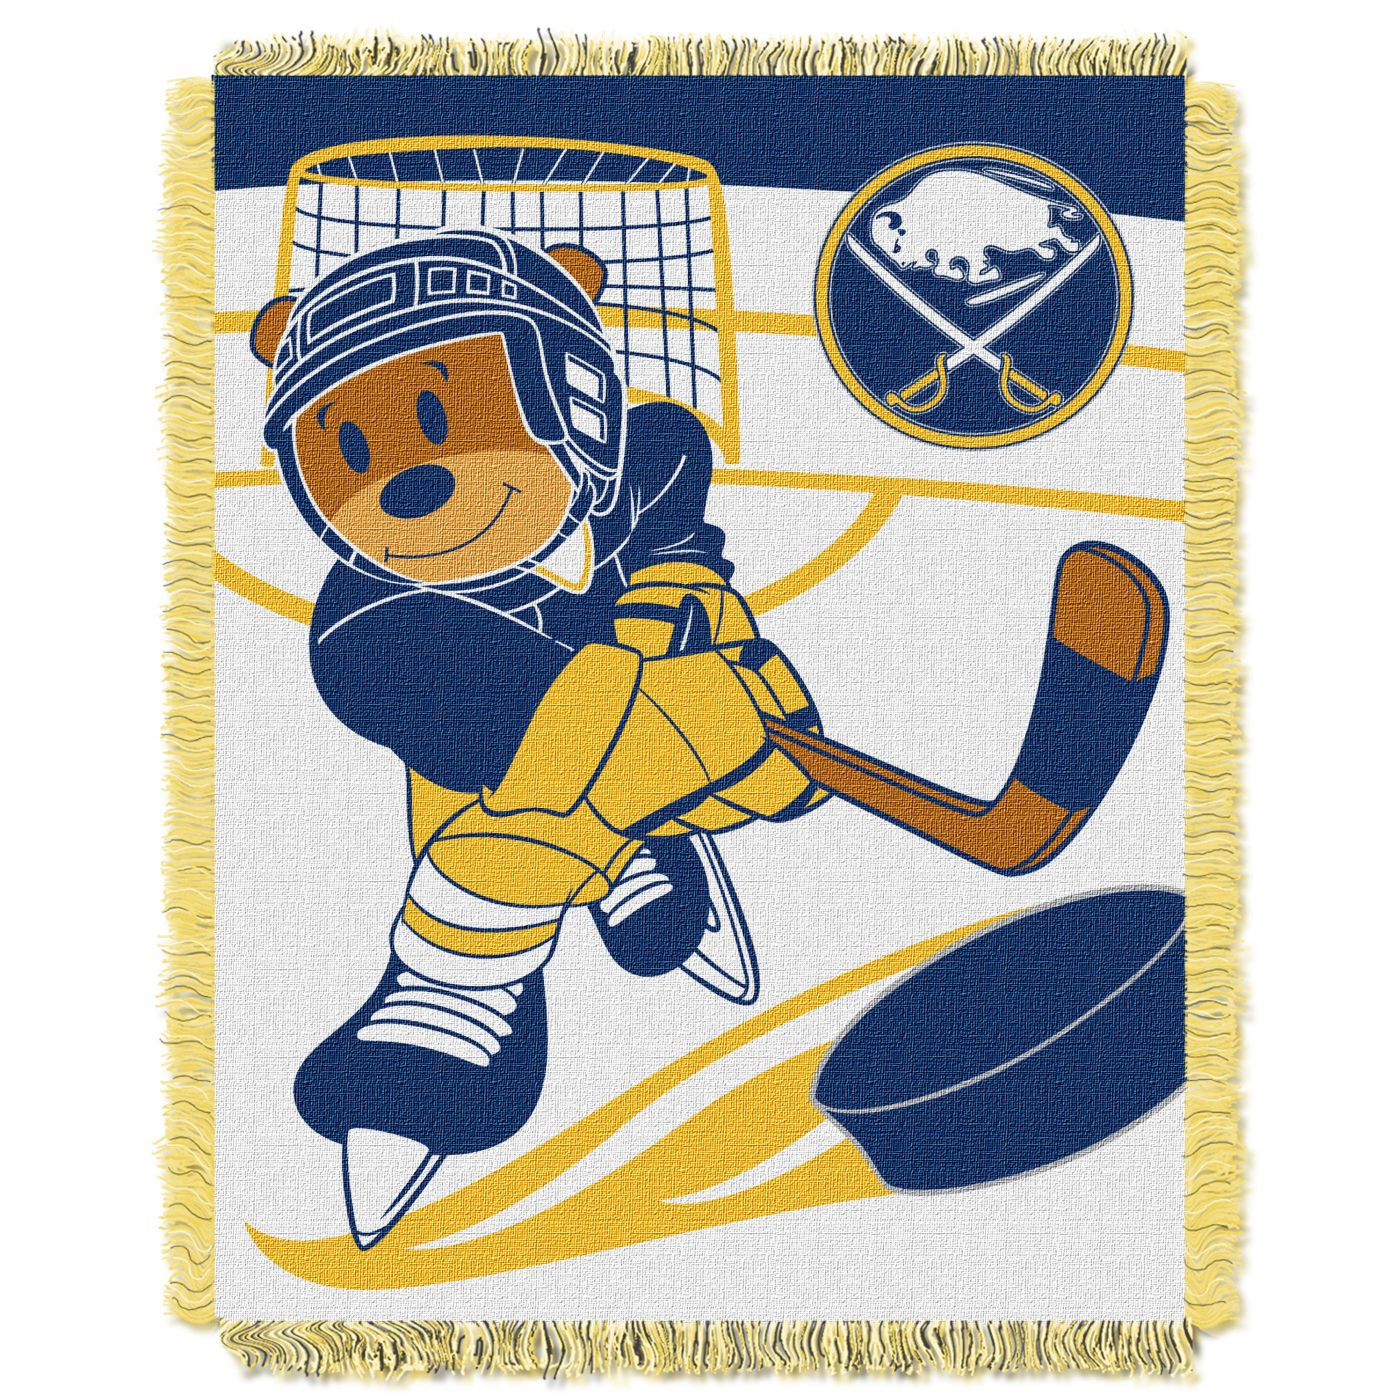 Northwest Buffalo Sabres Score Baby 36 in x 46 in Jacquard Woven Throw Blanket